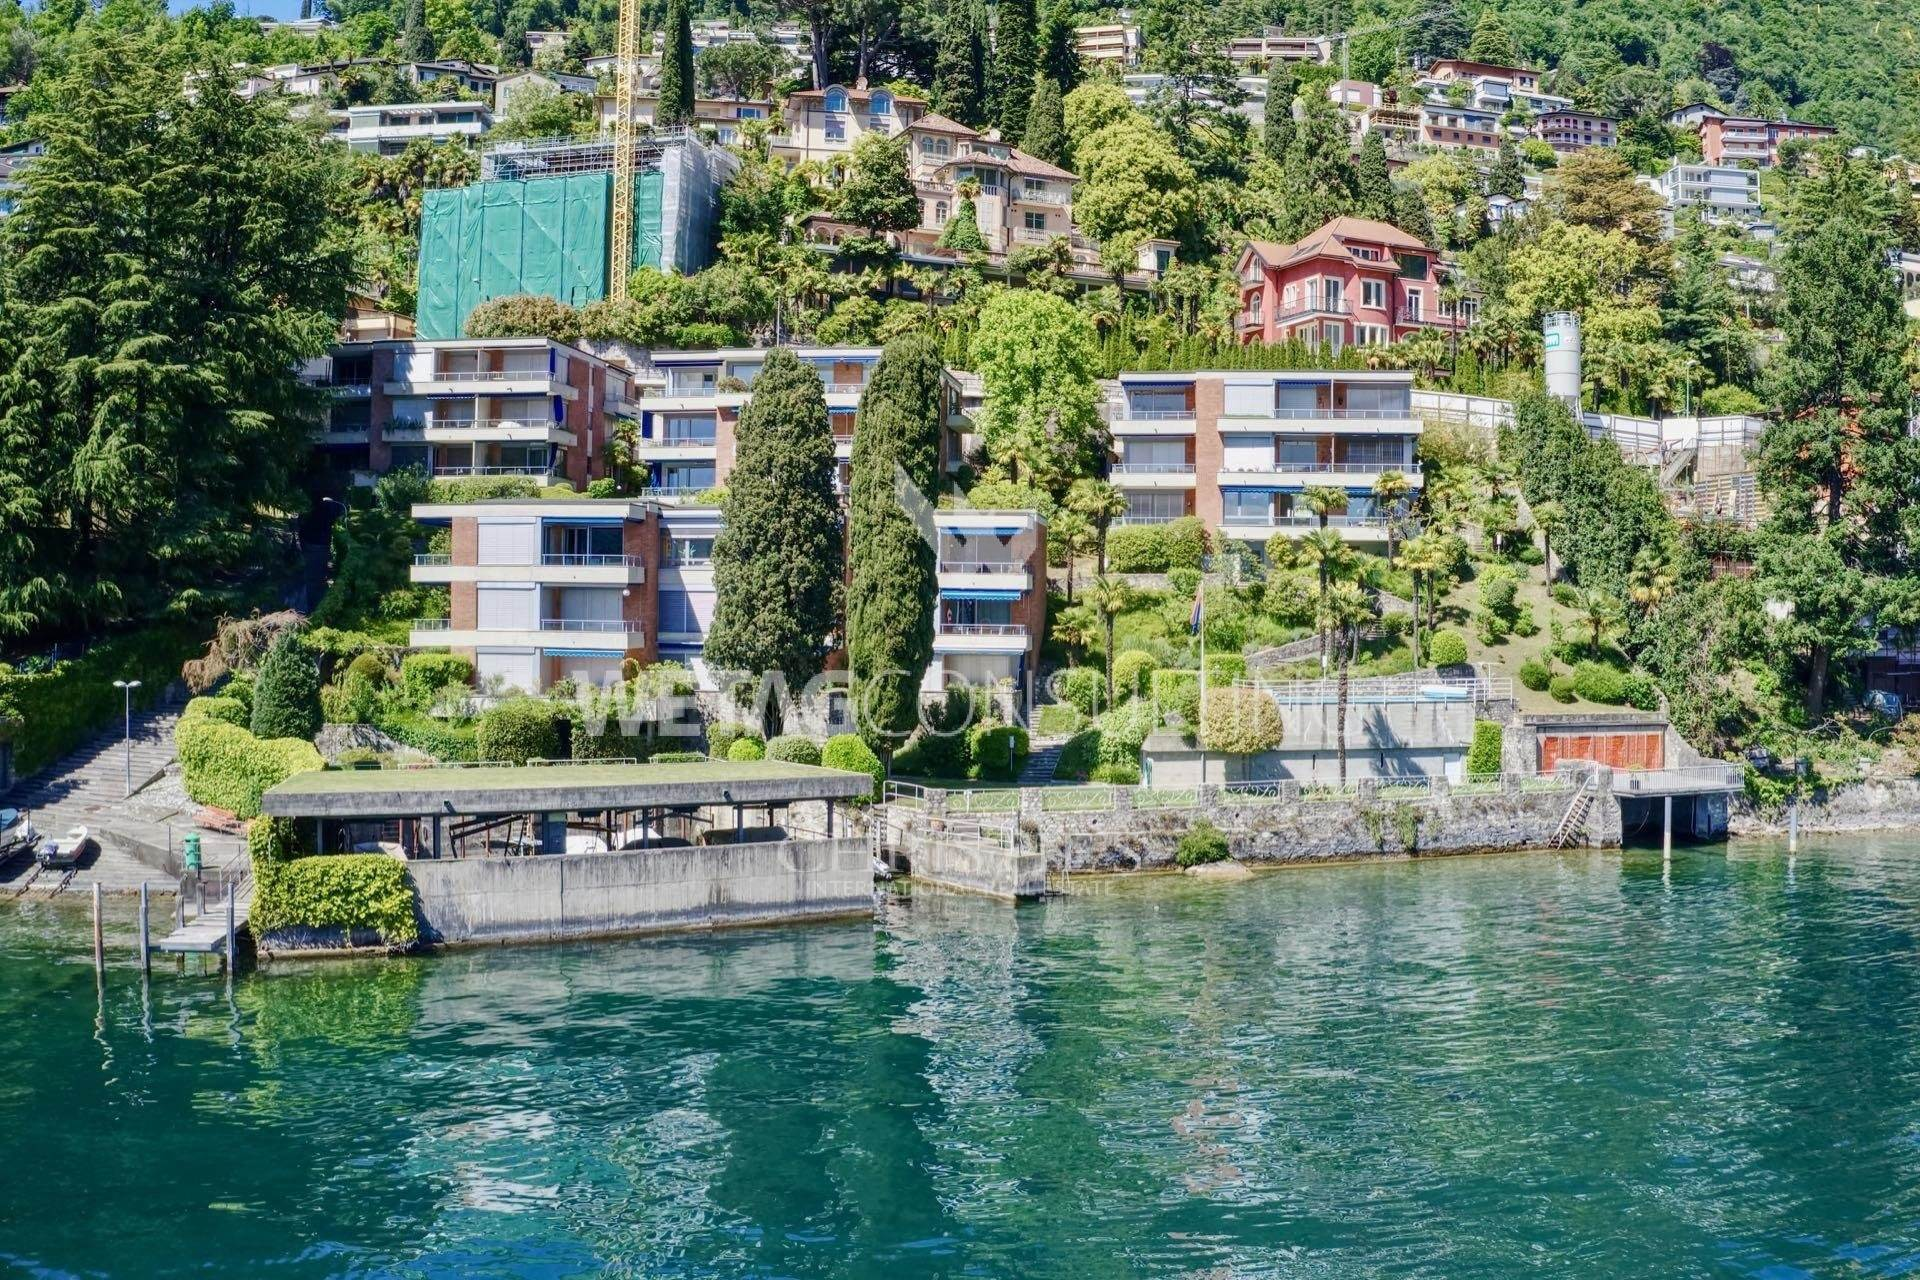 集合住宅 のために 売買 アット Prestigious 4.5-room apartment for sale in Castagnola directly on Lake Lugano Castagnola, ティチーノ,6976 スイス